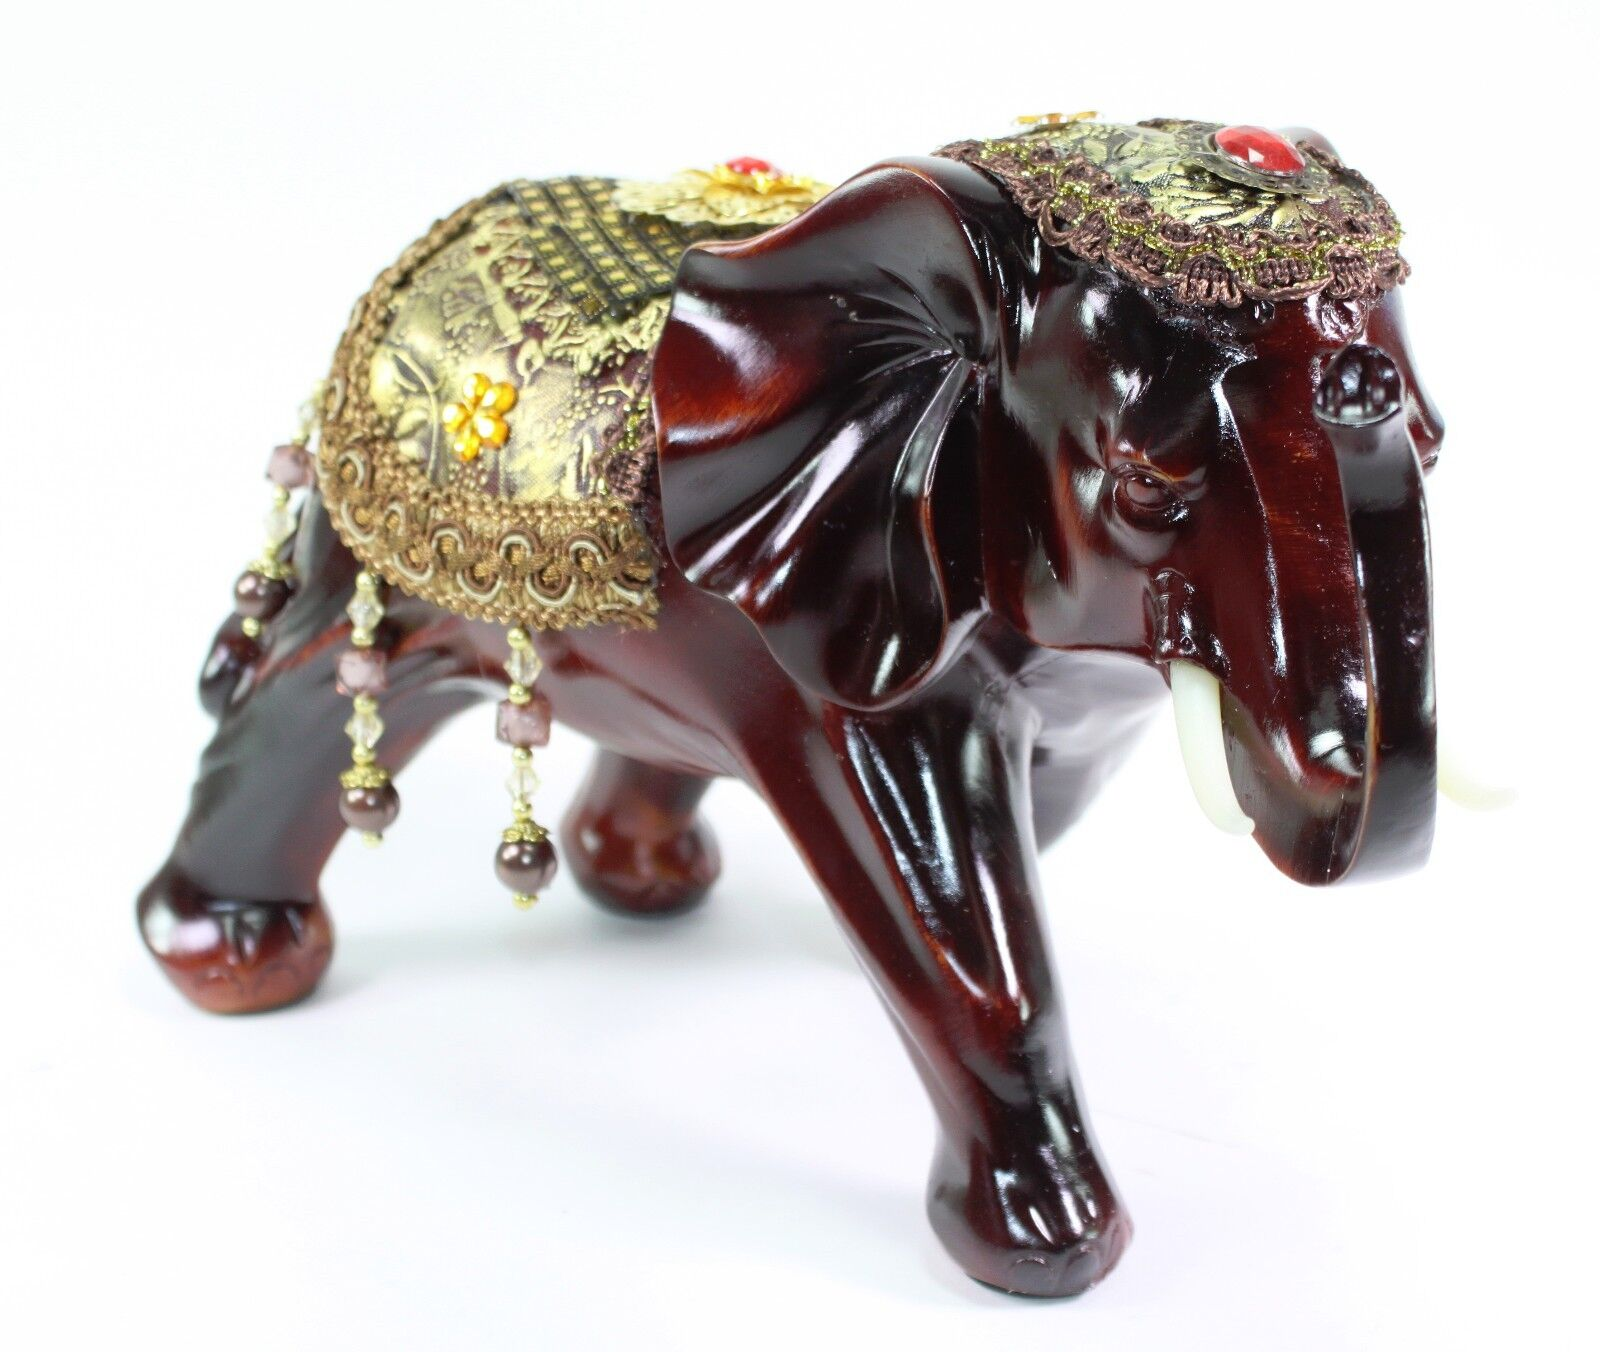 Feng Shui 7 5 Red Gold Elephant Trunk Statue Lucky Figurine Gift And Home Decor